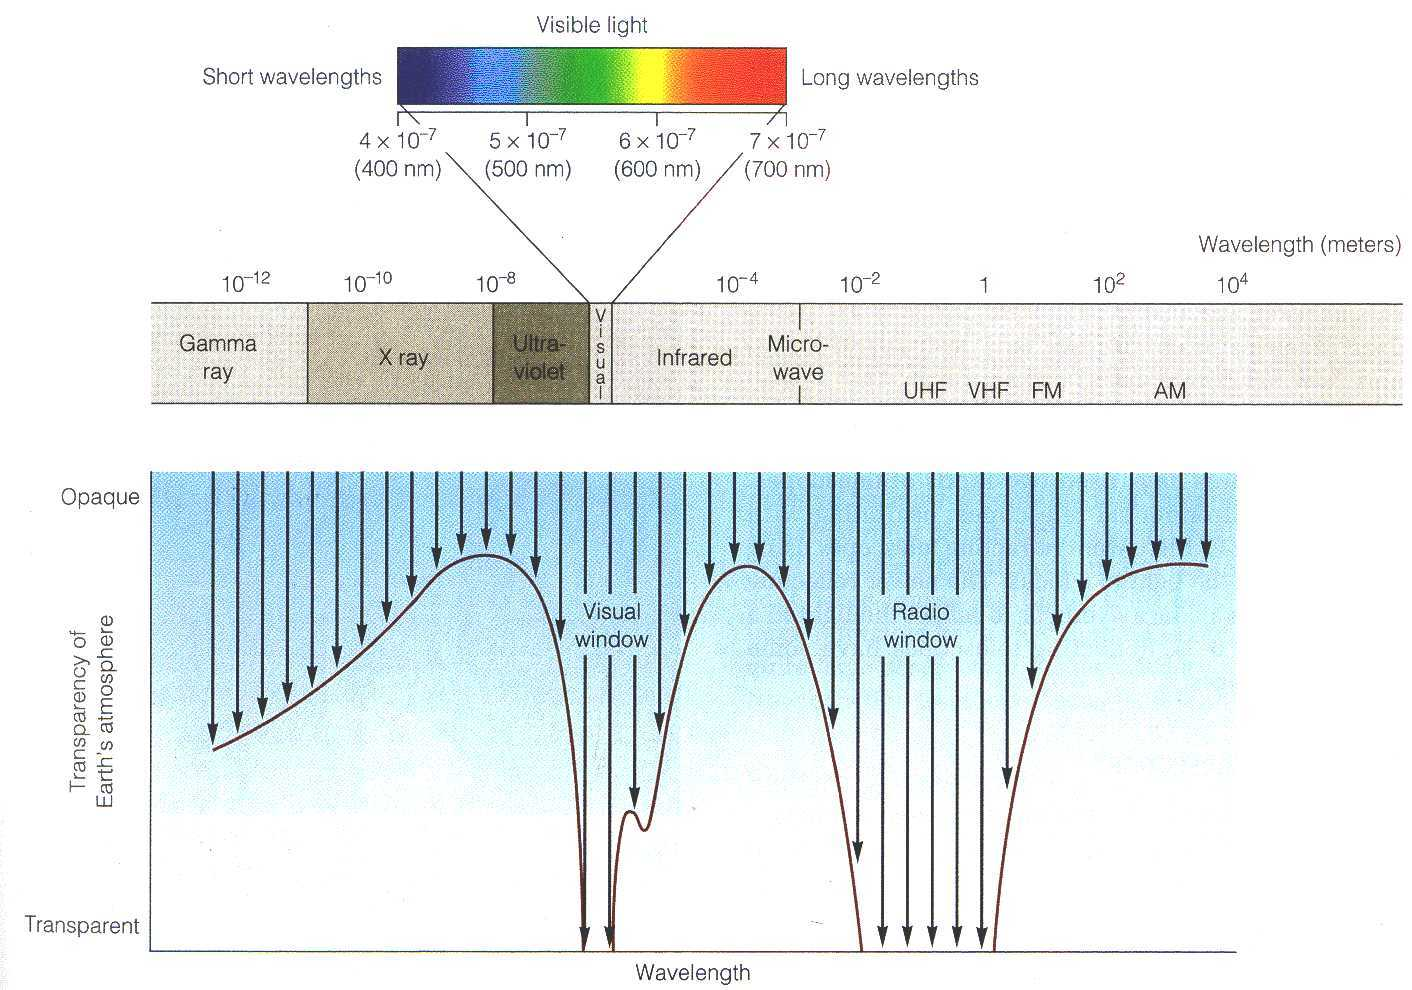 Electromagnetic Spectral Transmission Through the Atmosphere